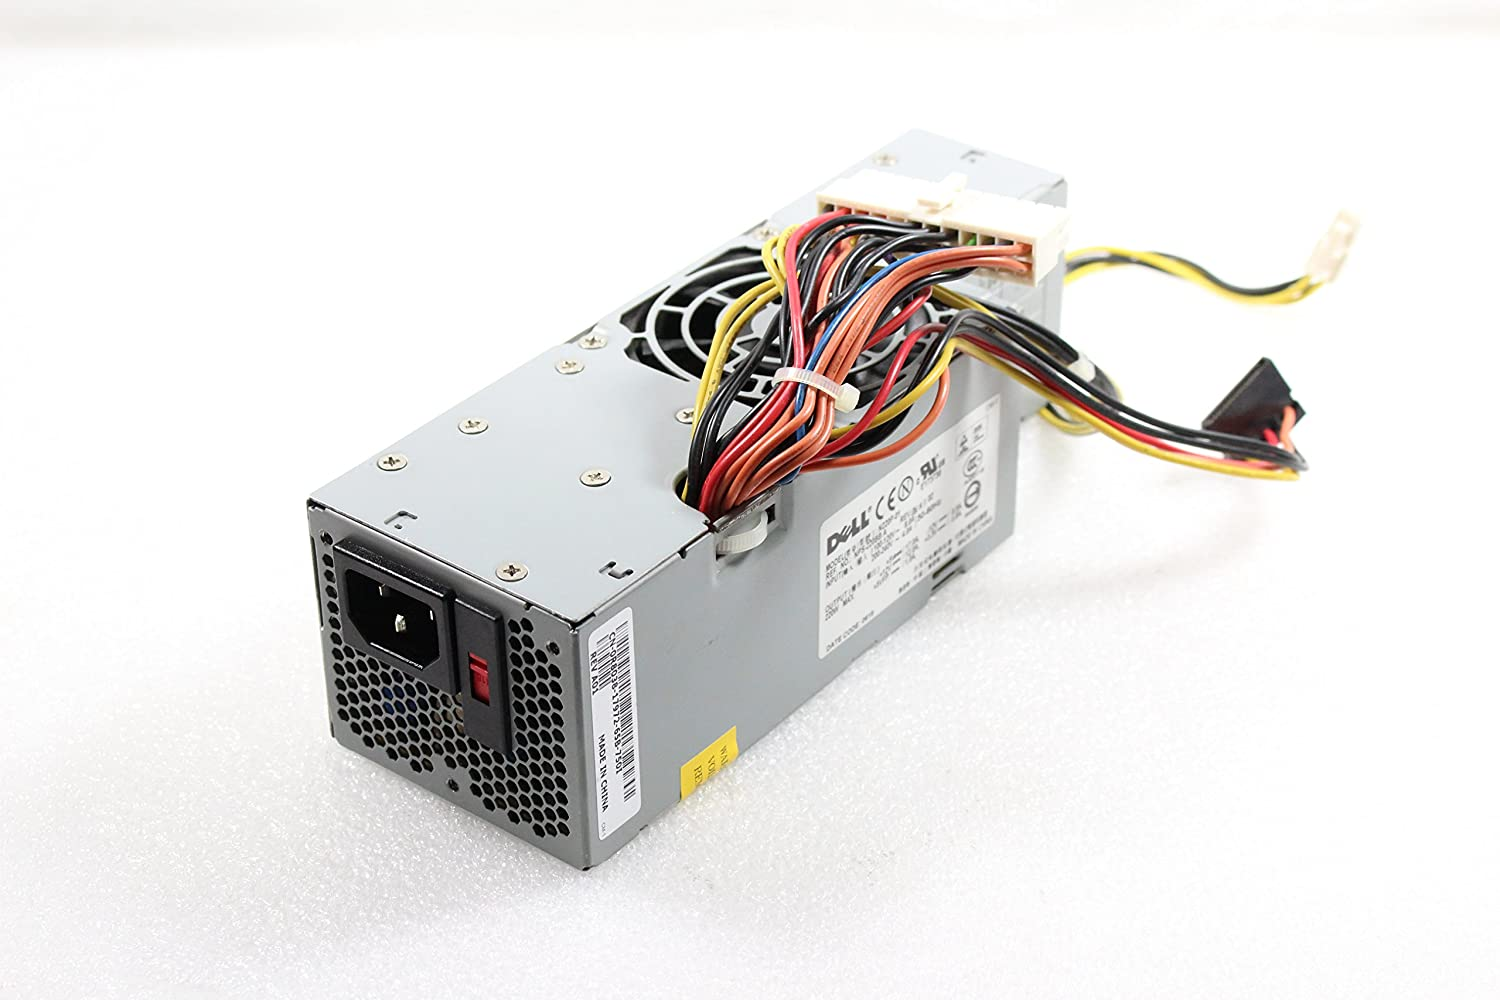 Dell Optiplex Gx520 Power Supply At Form Factor Genuine Psu For The And Small Systems Dimension Part